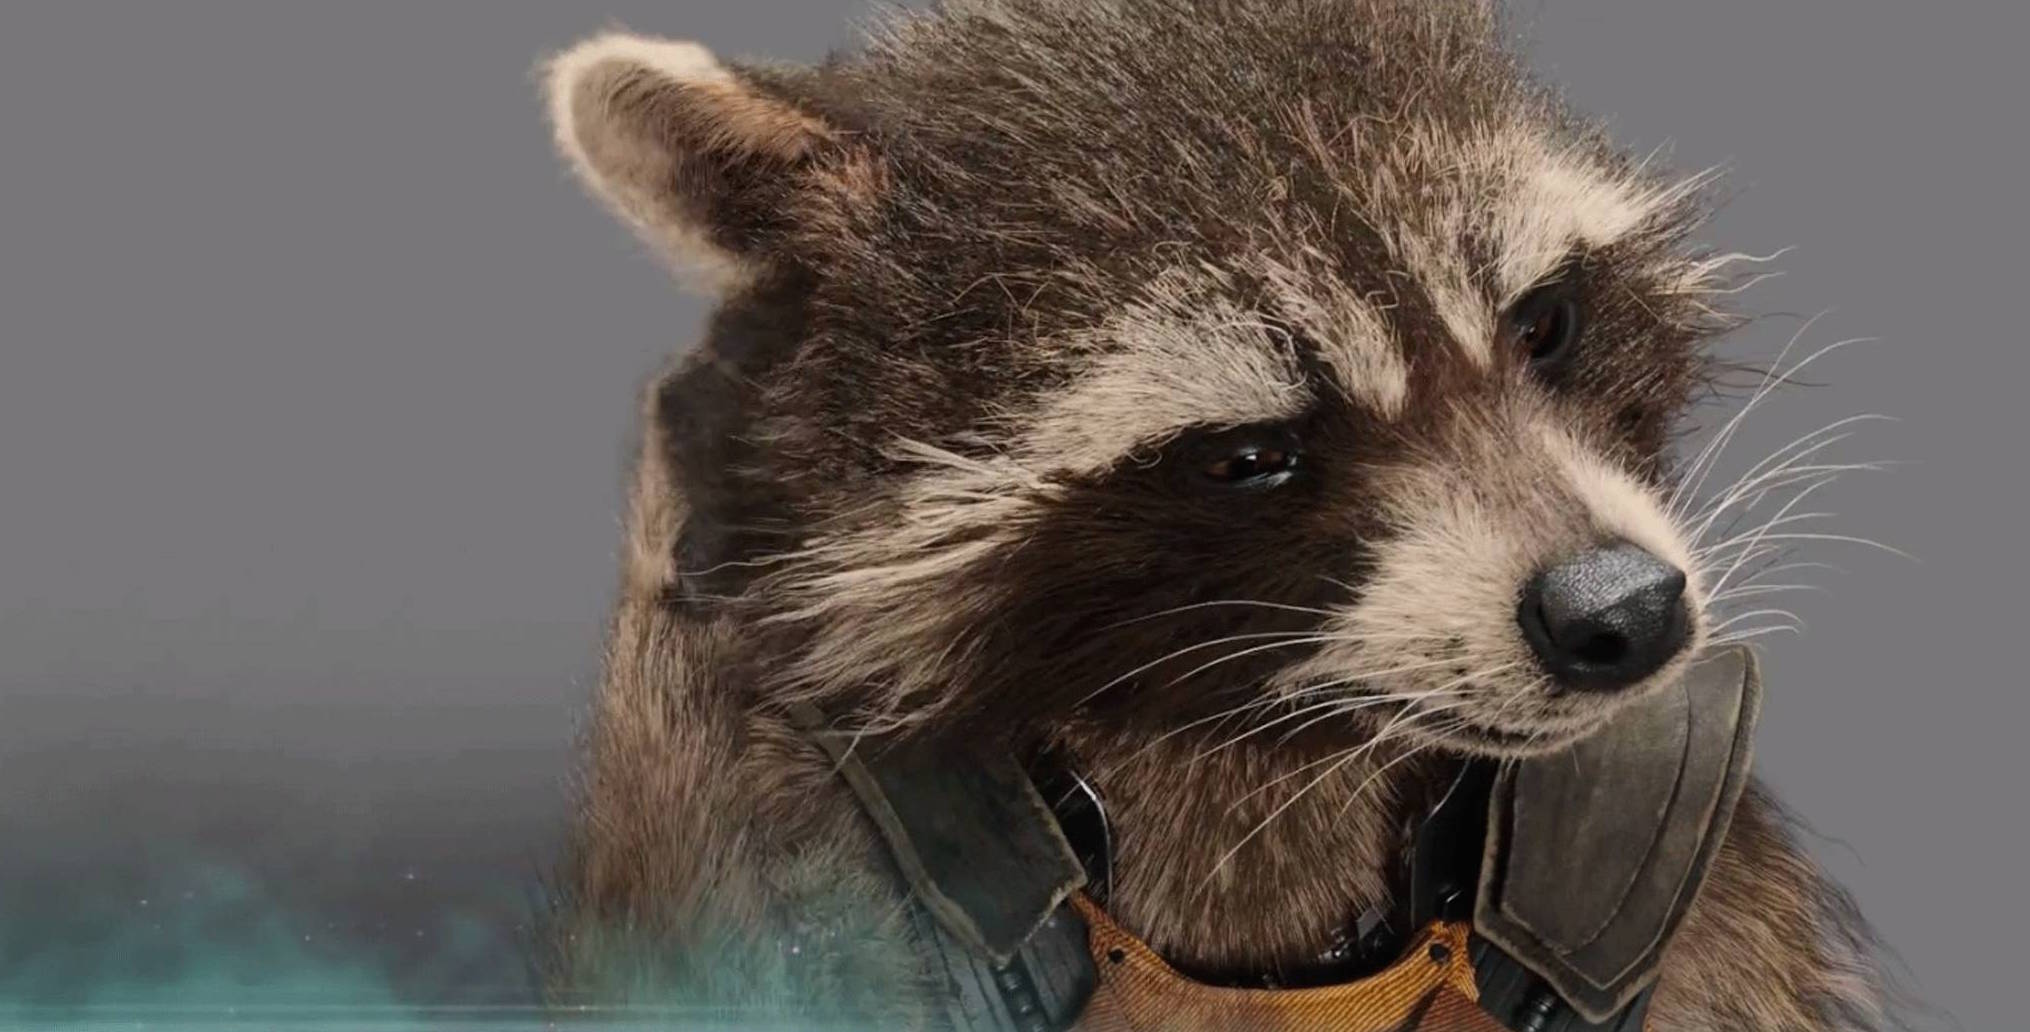 james gunn finds this hyper realistic rocket raccoon animatronic